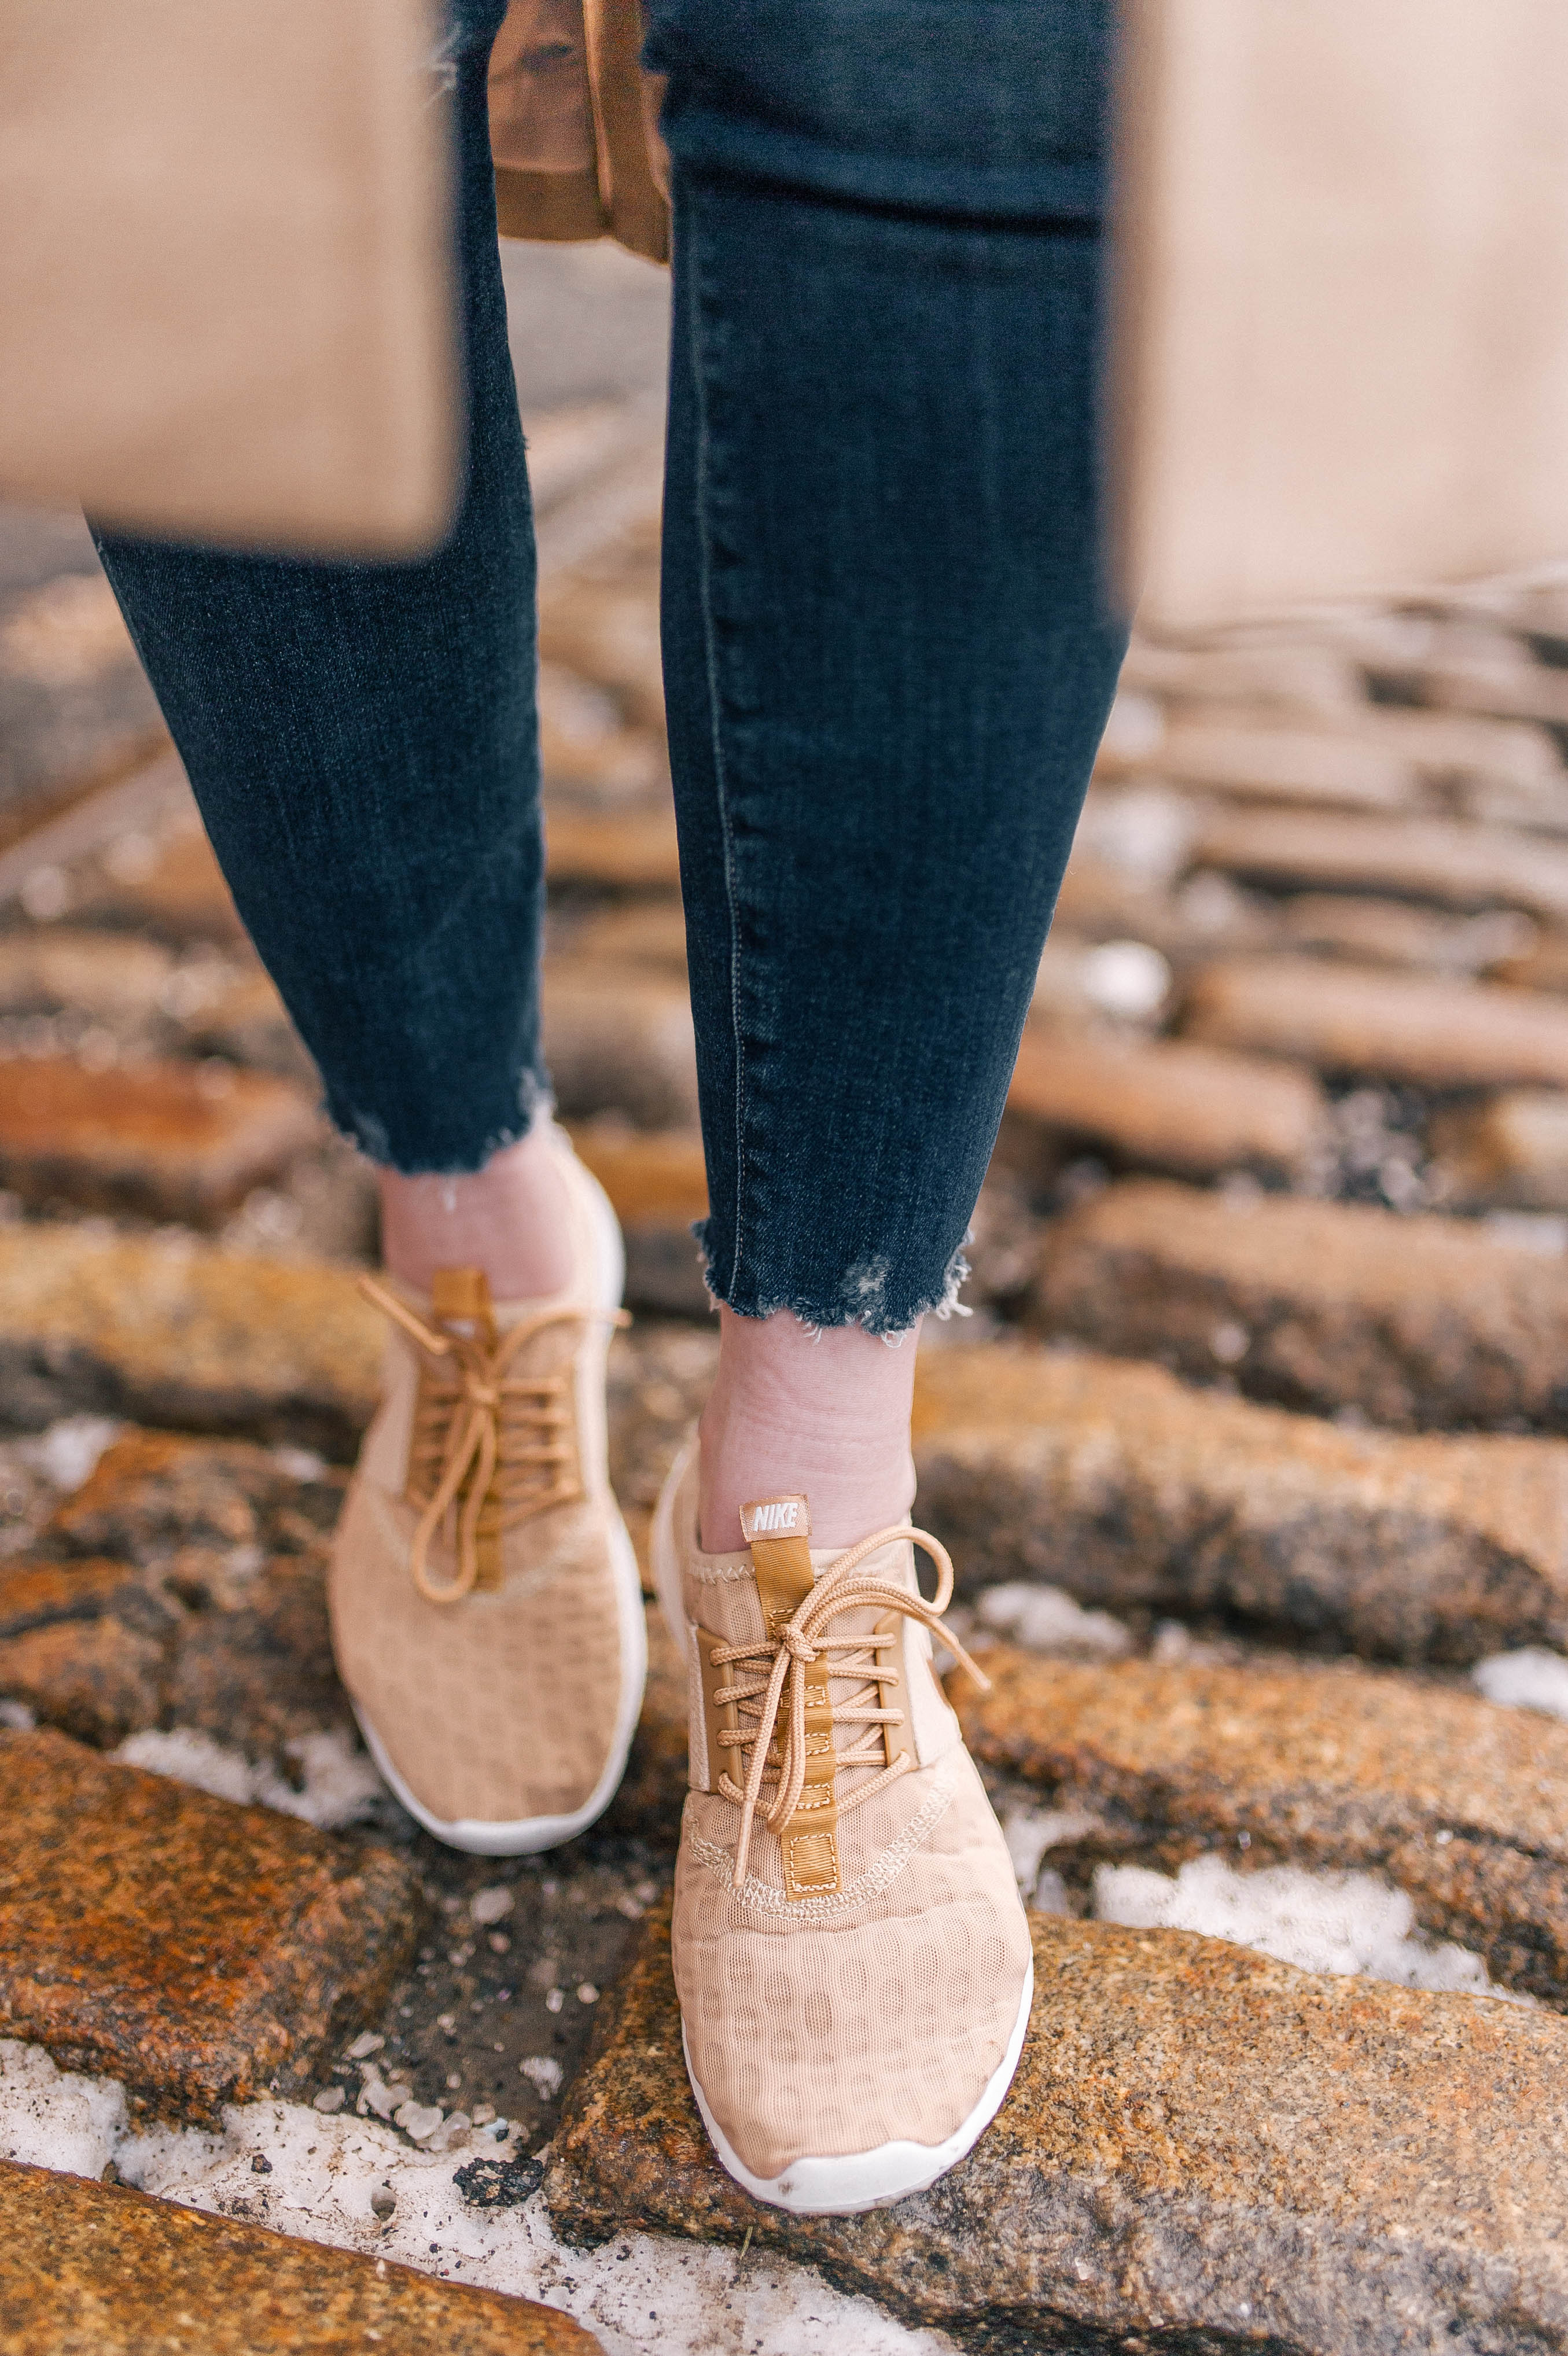 Gold Nike Sneakers I wit & whimsy